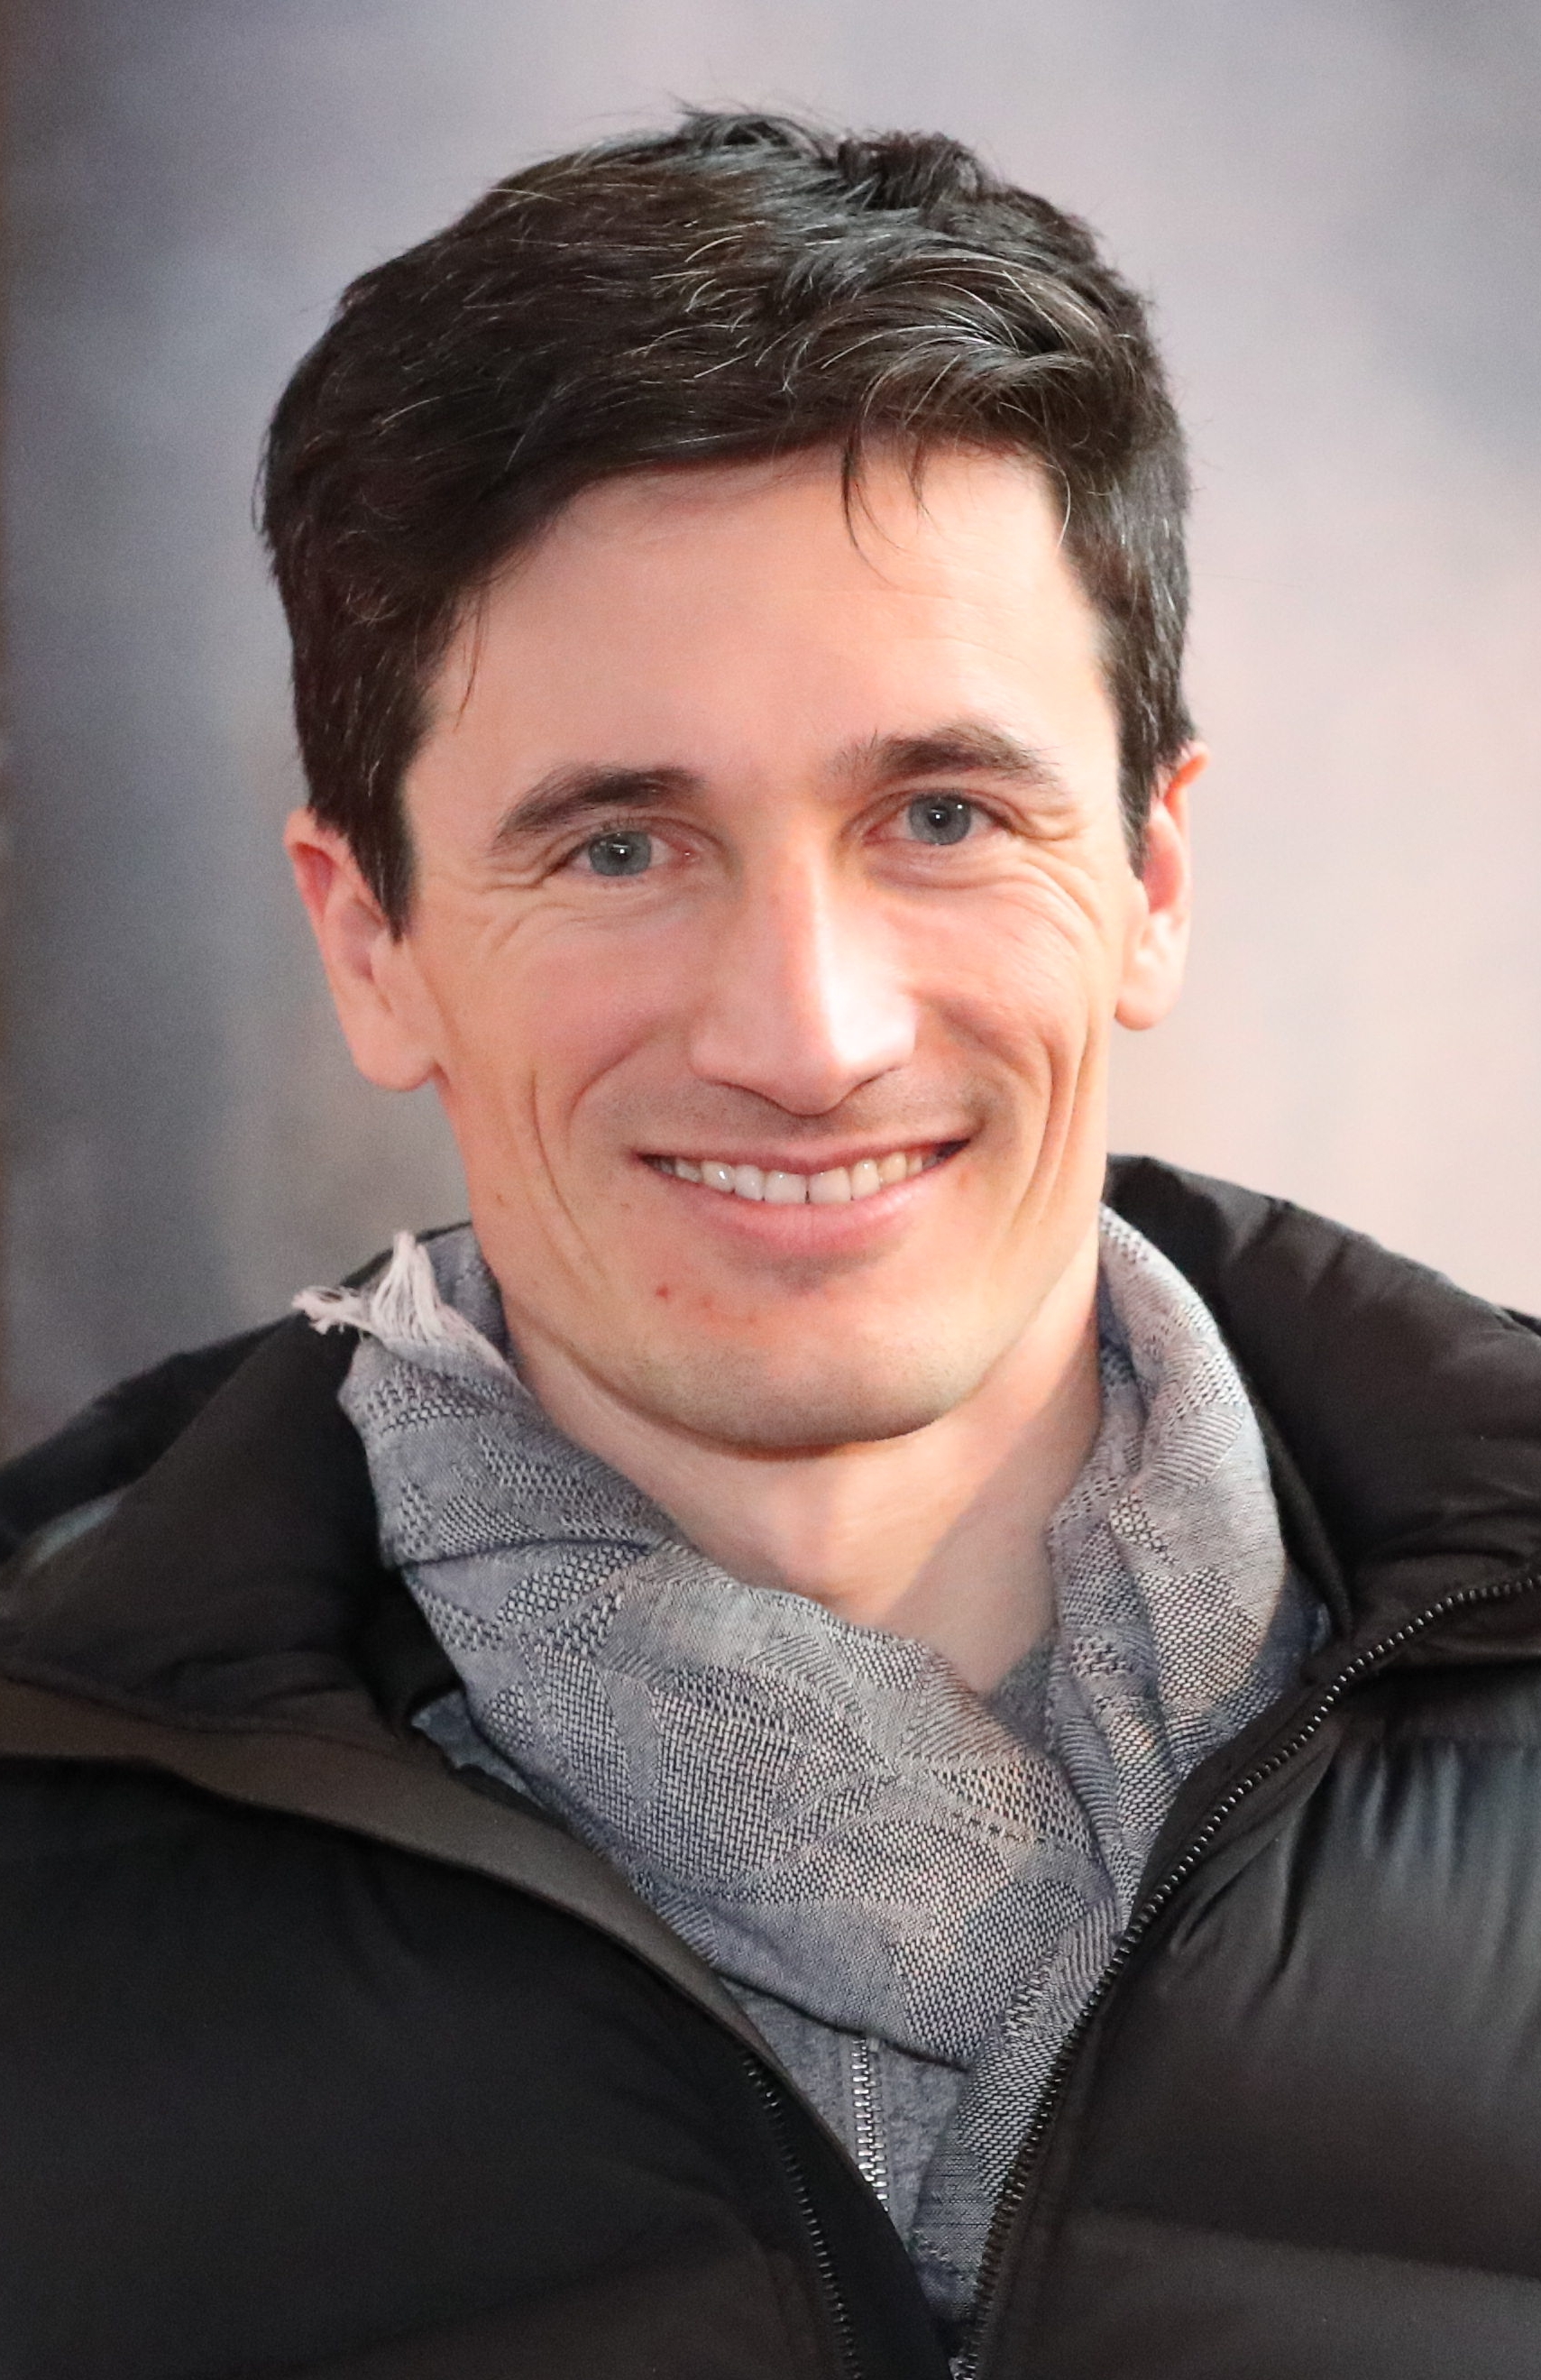 The 40-year old son of father Hubert and mother Waltraud Martin Schmitt in 2018 photo. Martin Schmitt earned a  million dollar salary - leaving the net worth at 15 million in 2018